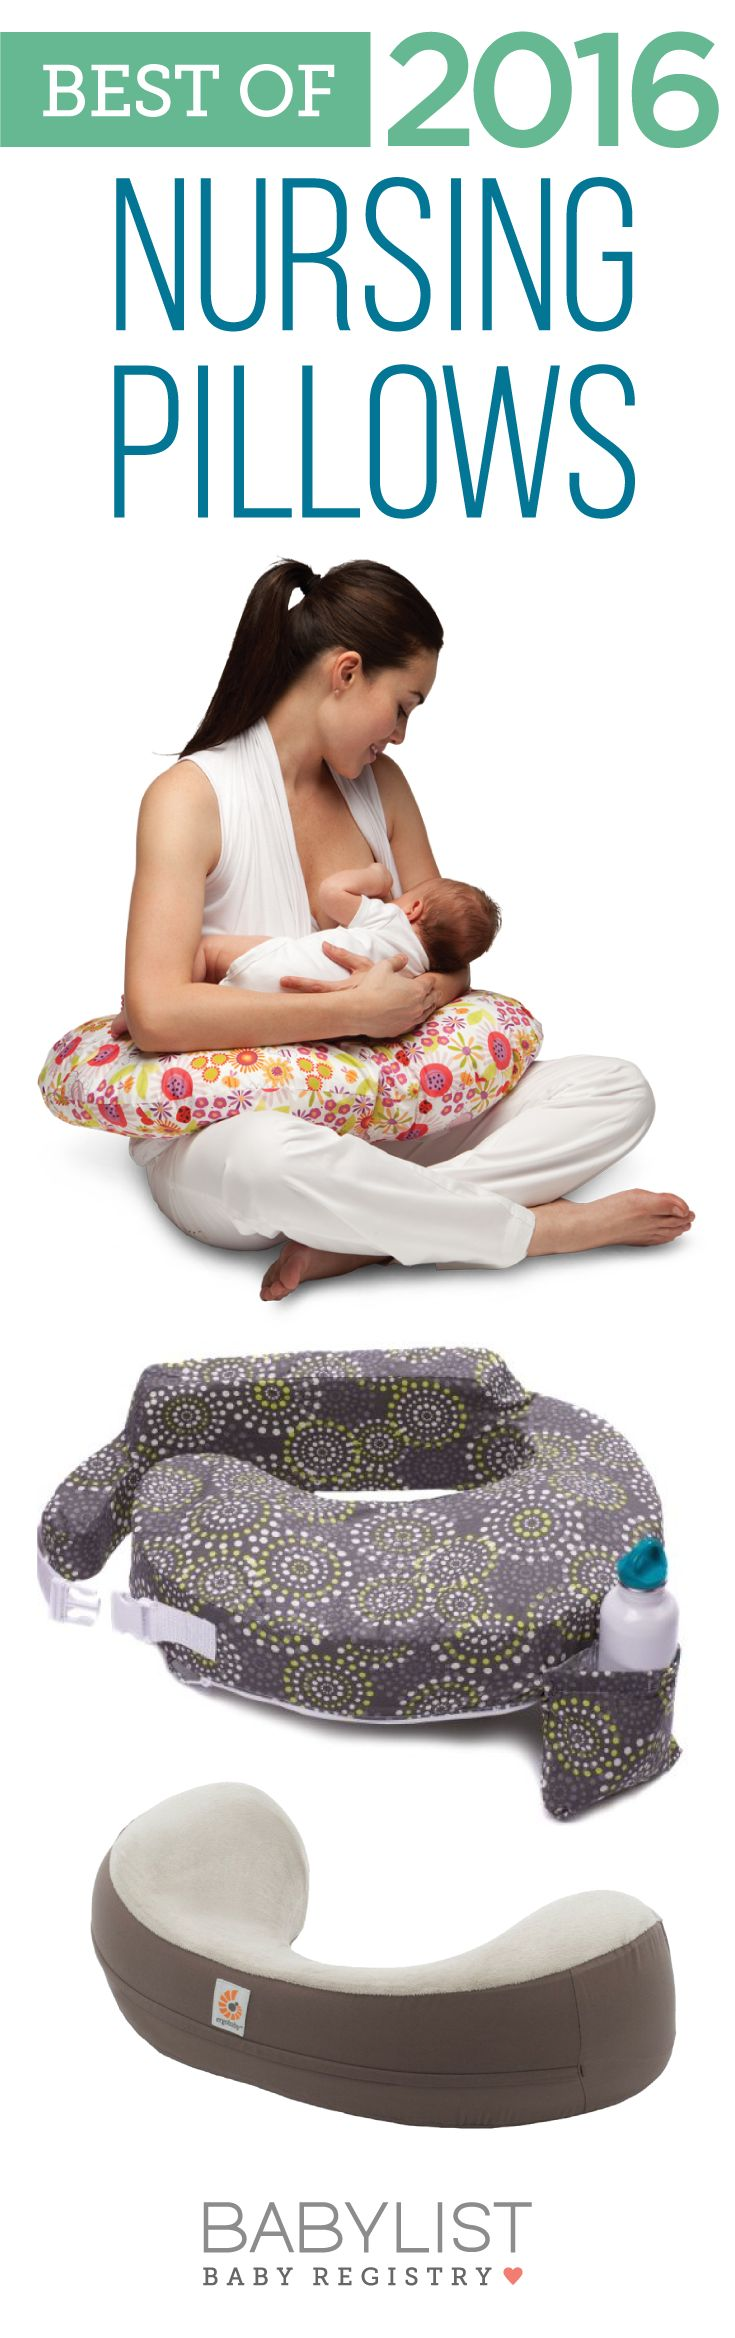 Need some advice on how to pick the best nursing pillow? Here are the top 5 picks of 2016 - based on our own research + input from thousands of parents. There is no one must-have nursing pillow. Every family is different. Use this guide to help you figure out the best choice for you and your little one.